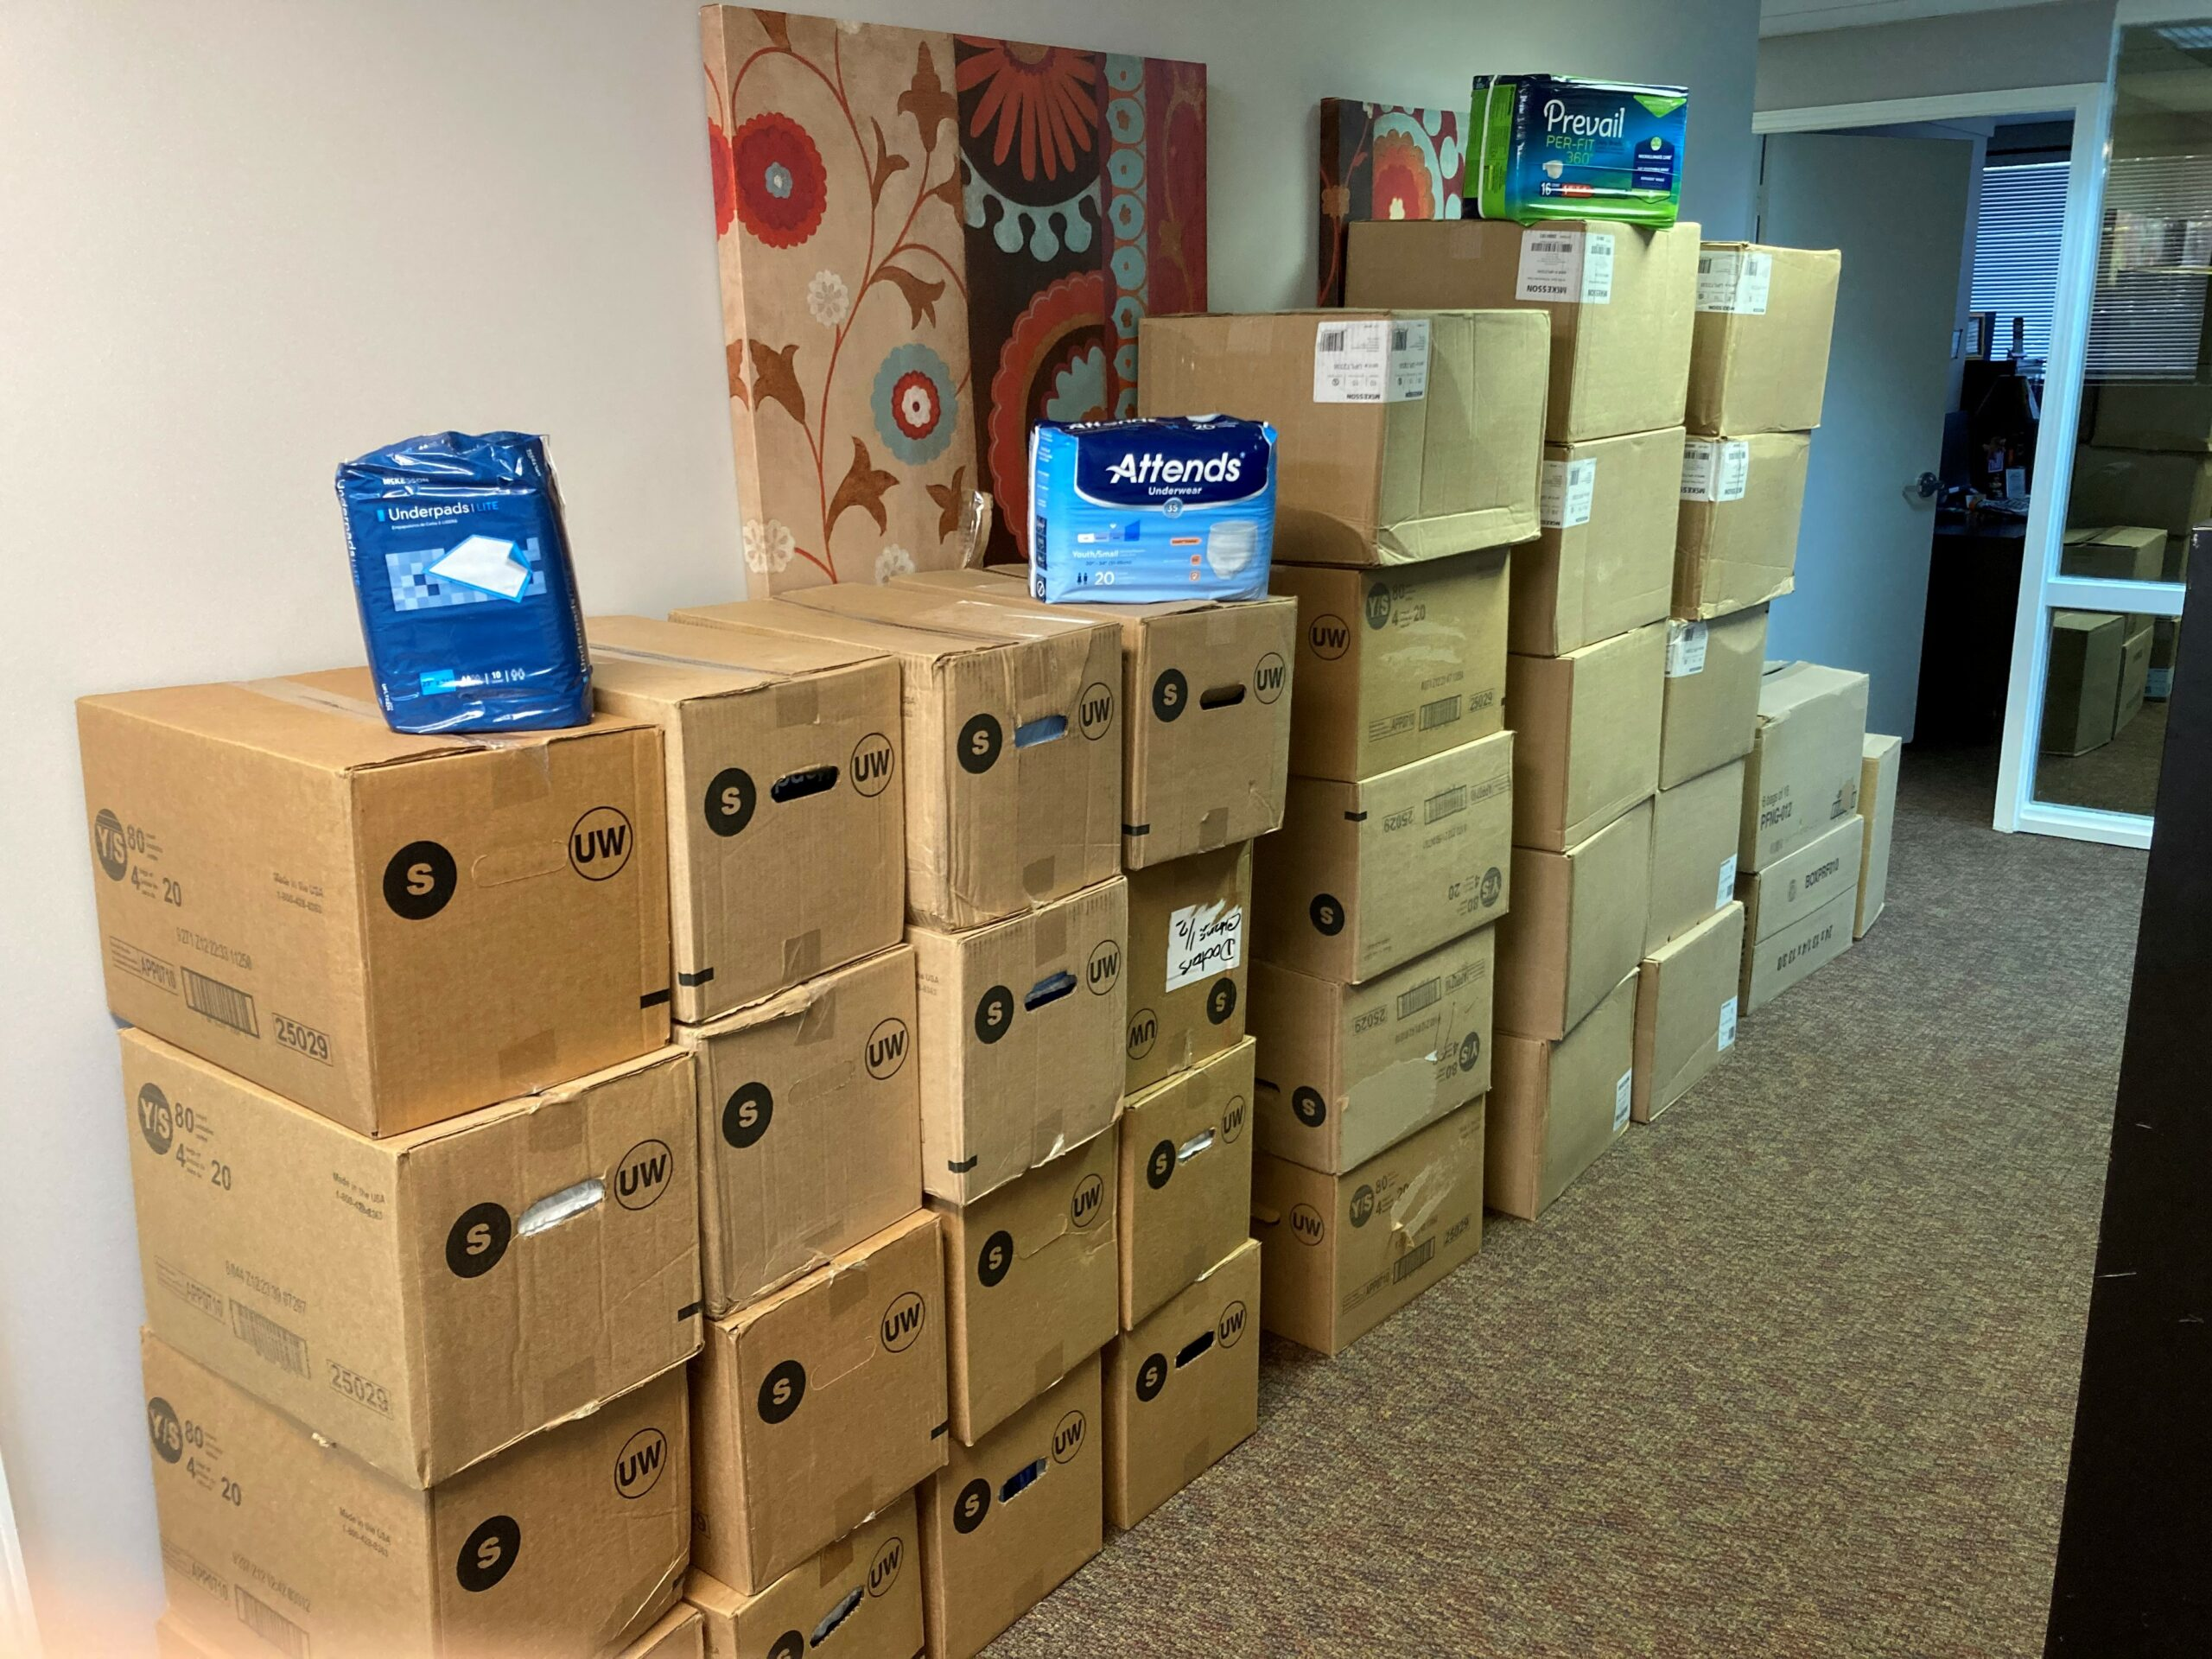 Image of boxes of adult diapers that have been donated by a parent to AND